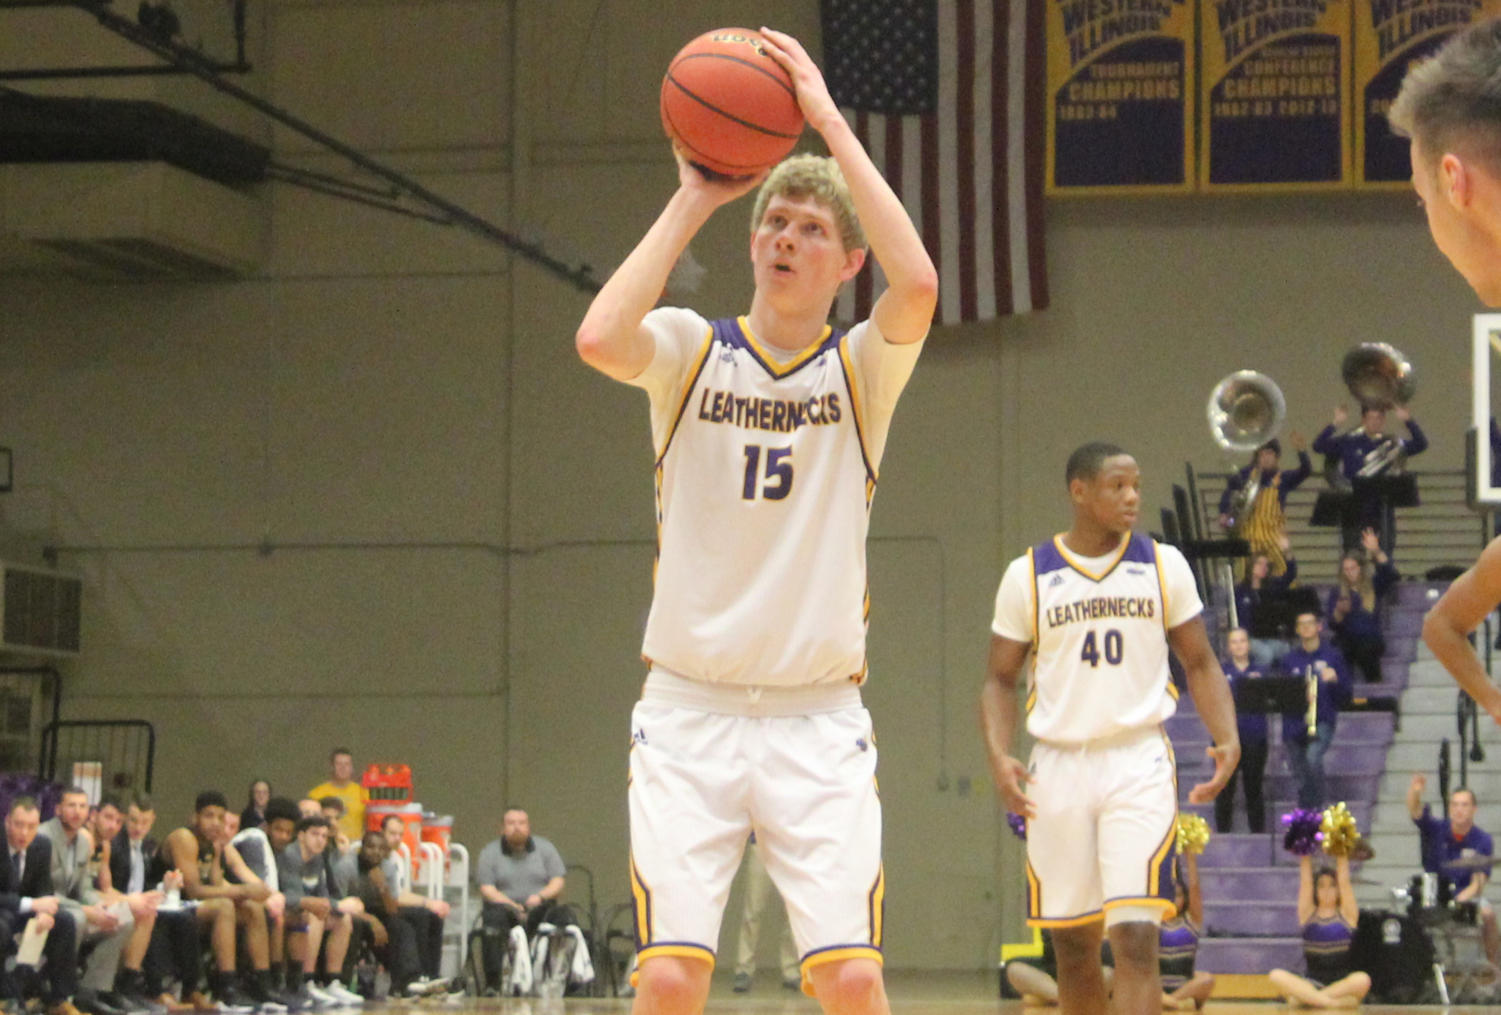 Ben Pyle lines up his shot at the free throw line in Western Hall.